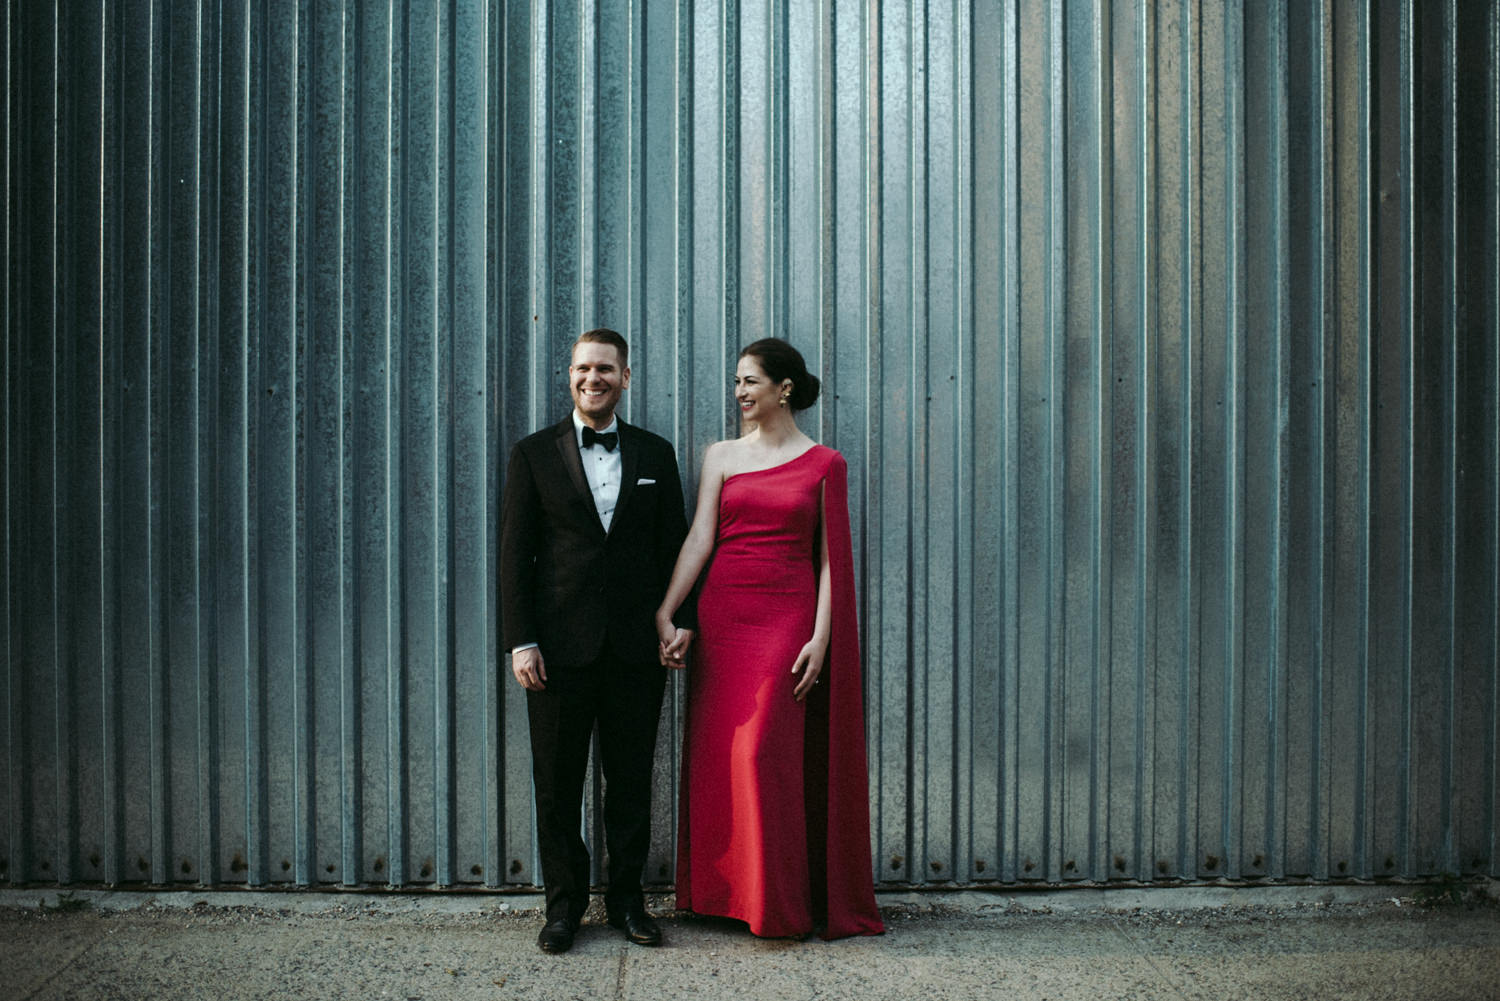 new-york-elopement-engagement-pictures-giancarlo-photography-107.jpg